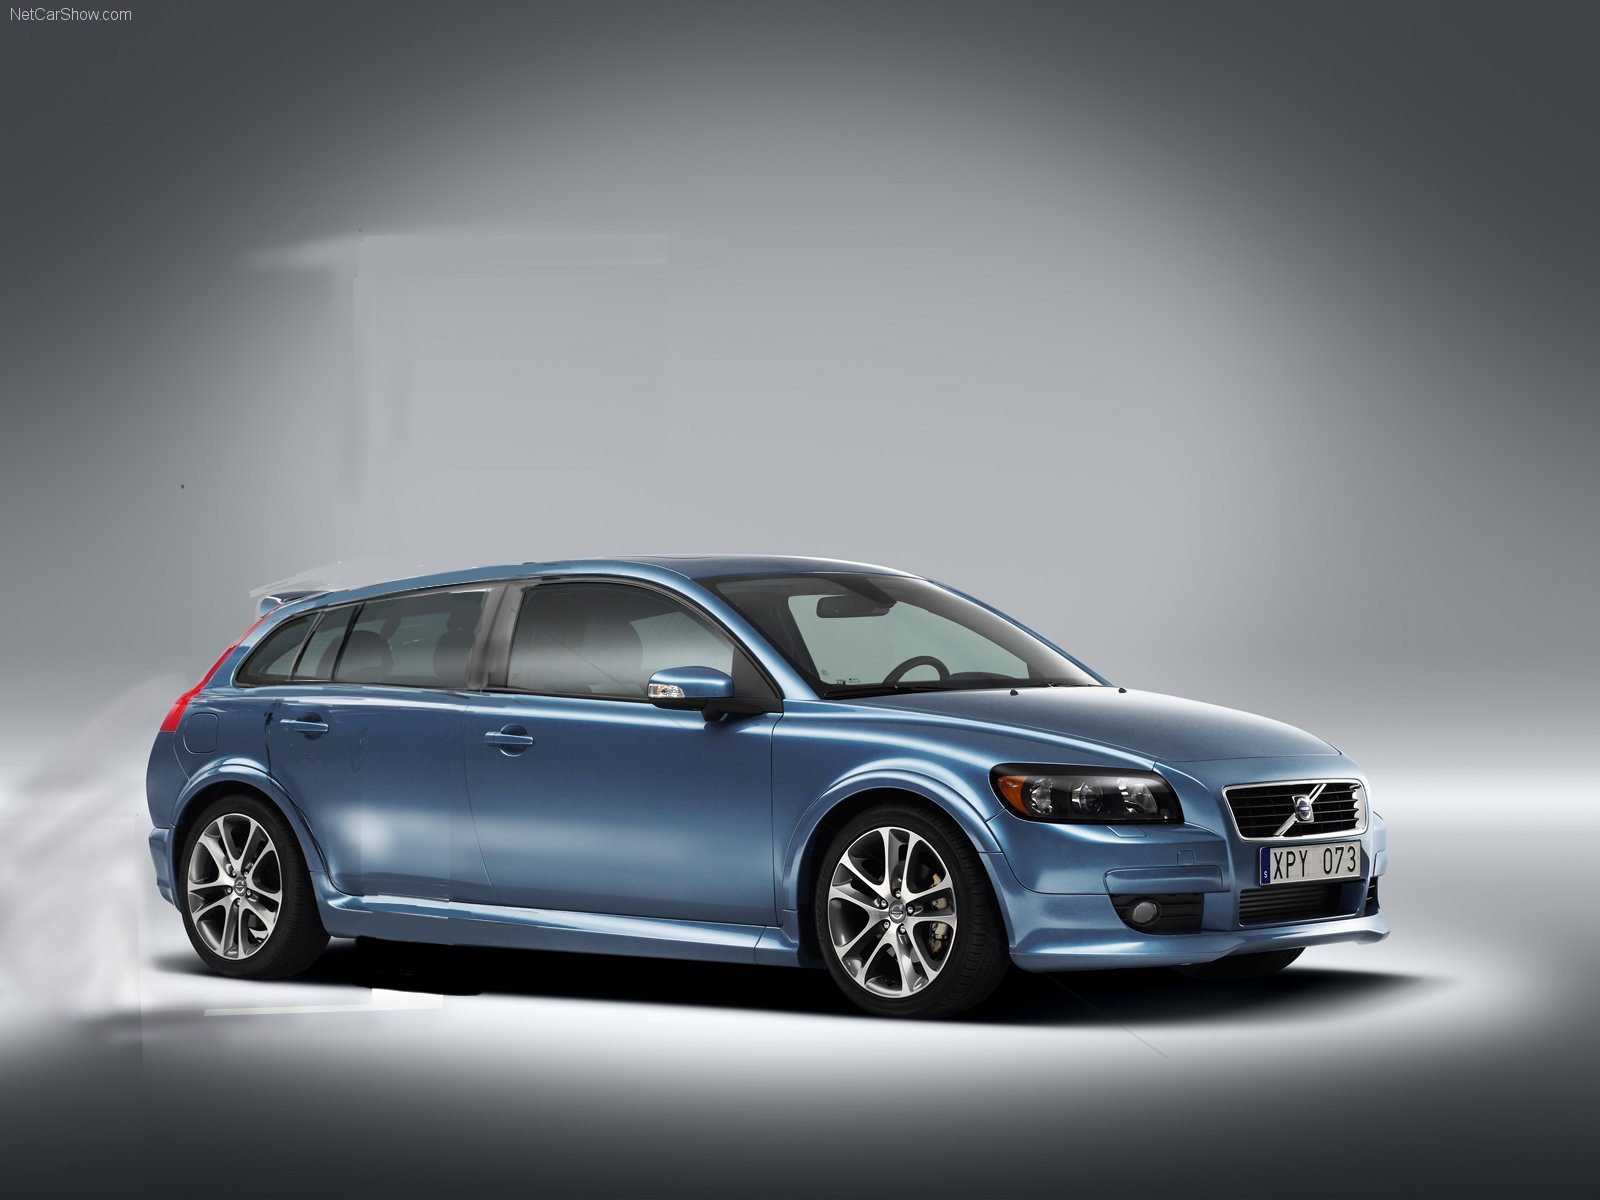 volvo c30 related images,start 150 - WeiLi Automotive Network